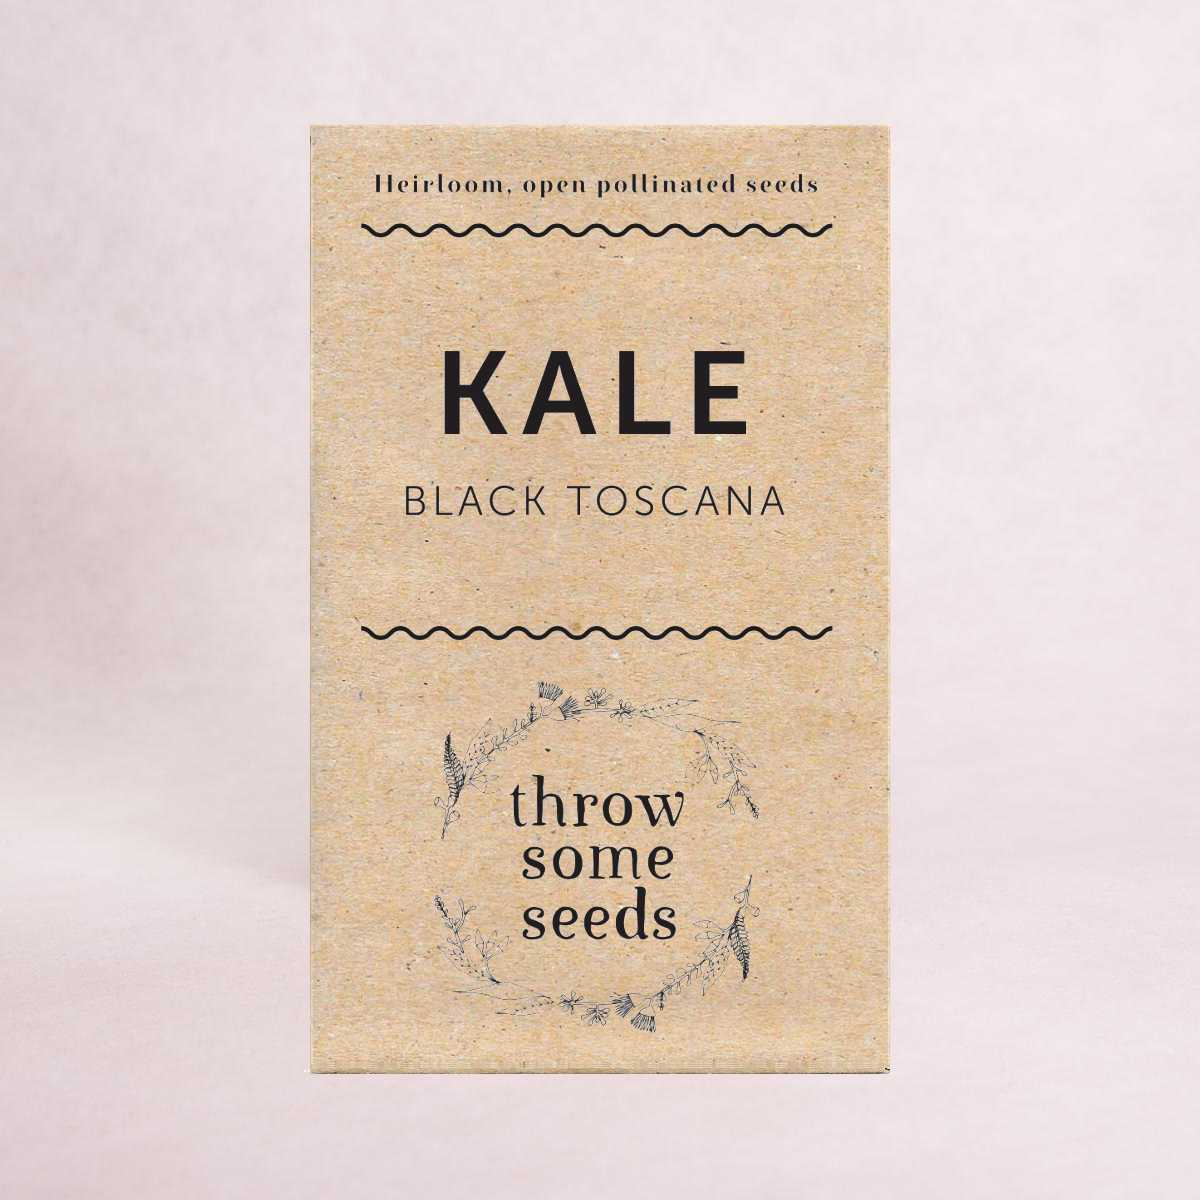 Kale (Black Toscana) Seeds - Seeds - Throw Some Seeds - Australian gardening gifts and eco products online!